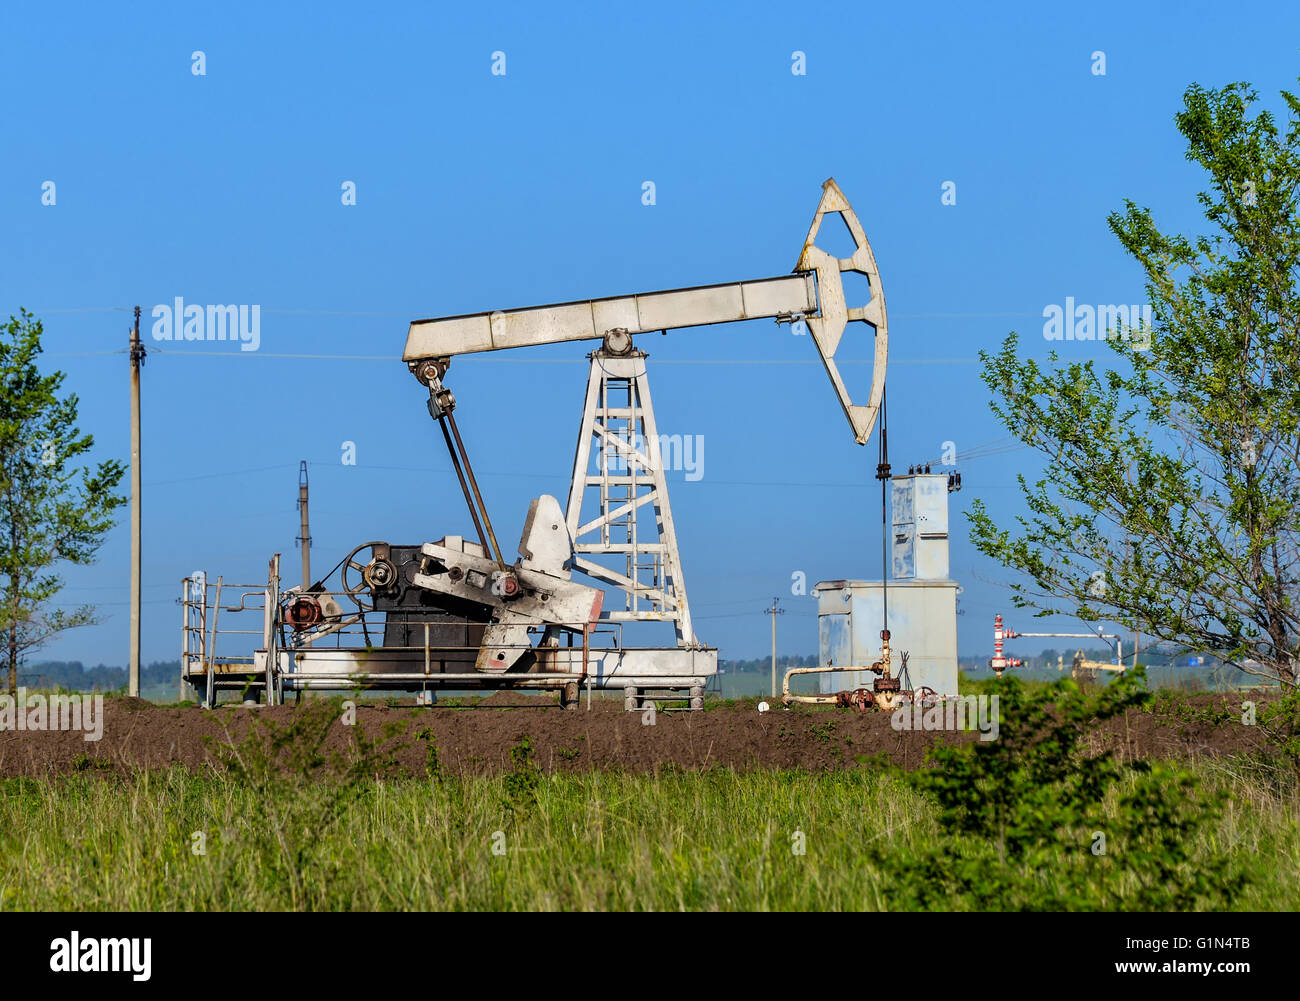 Old oil pumpjack on the summer field - Stock Image